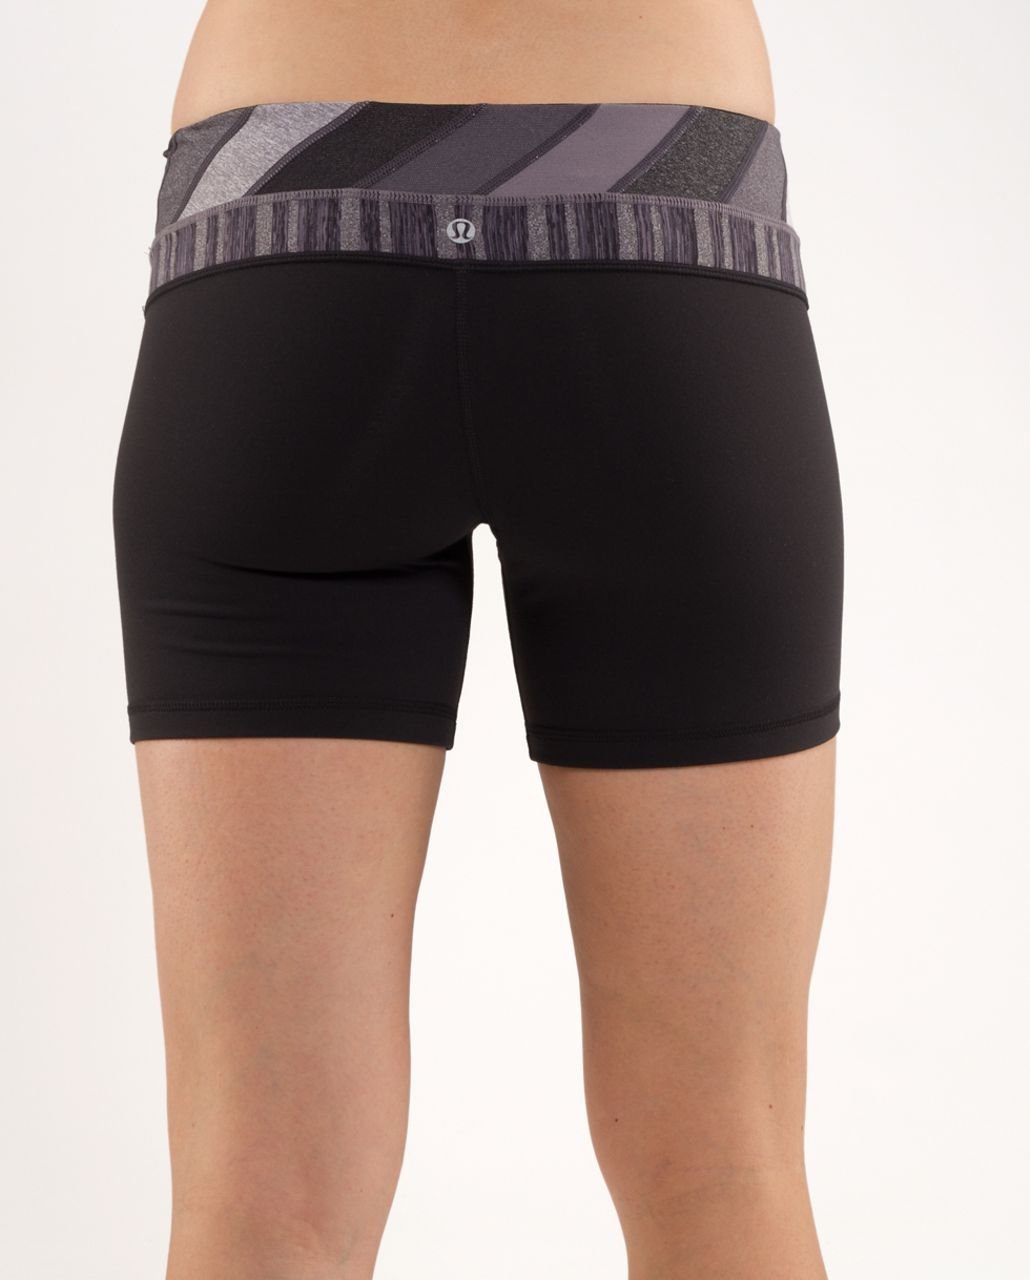 Lululemon Groove Short - Black /  Quilt 16